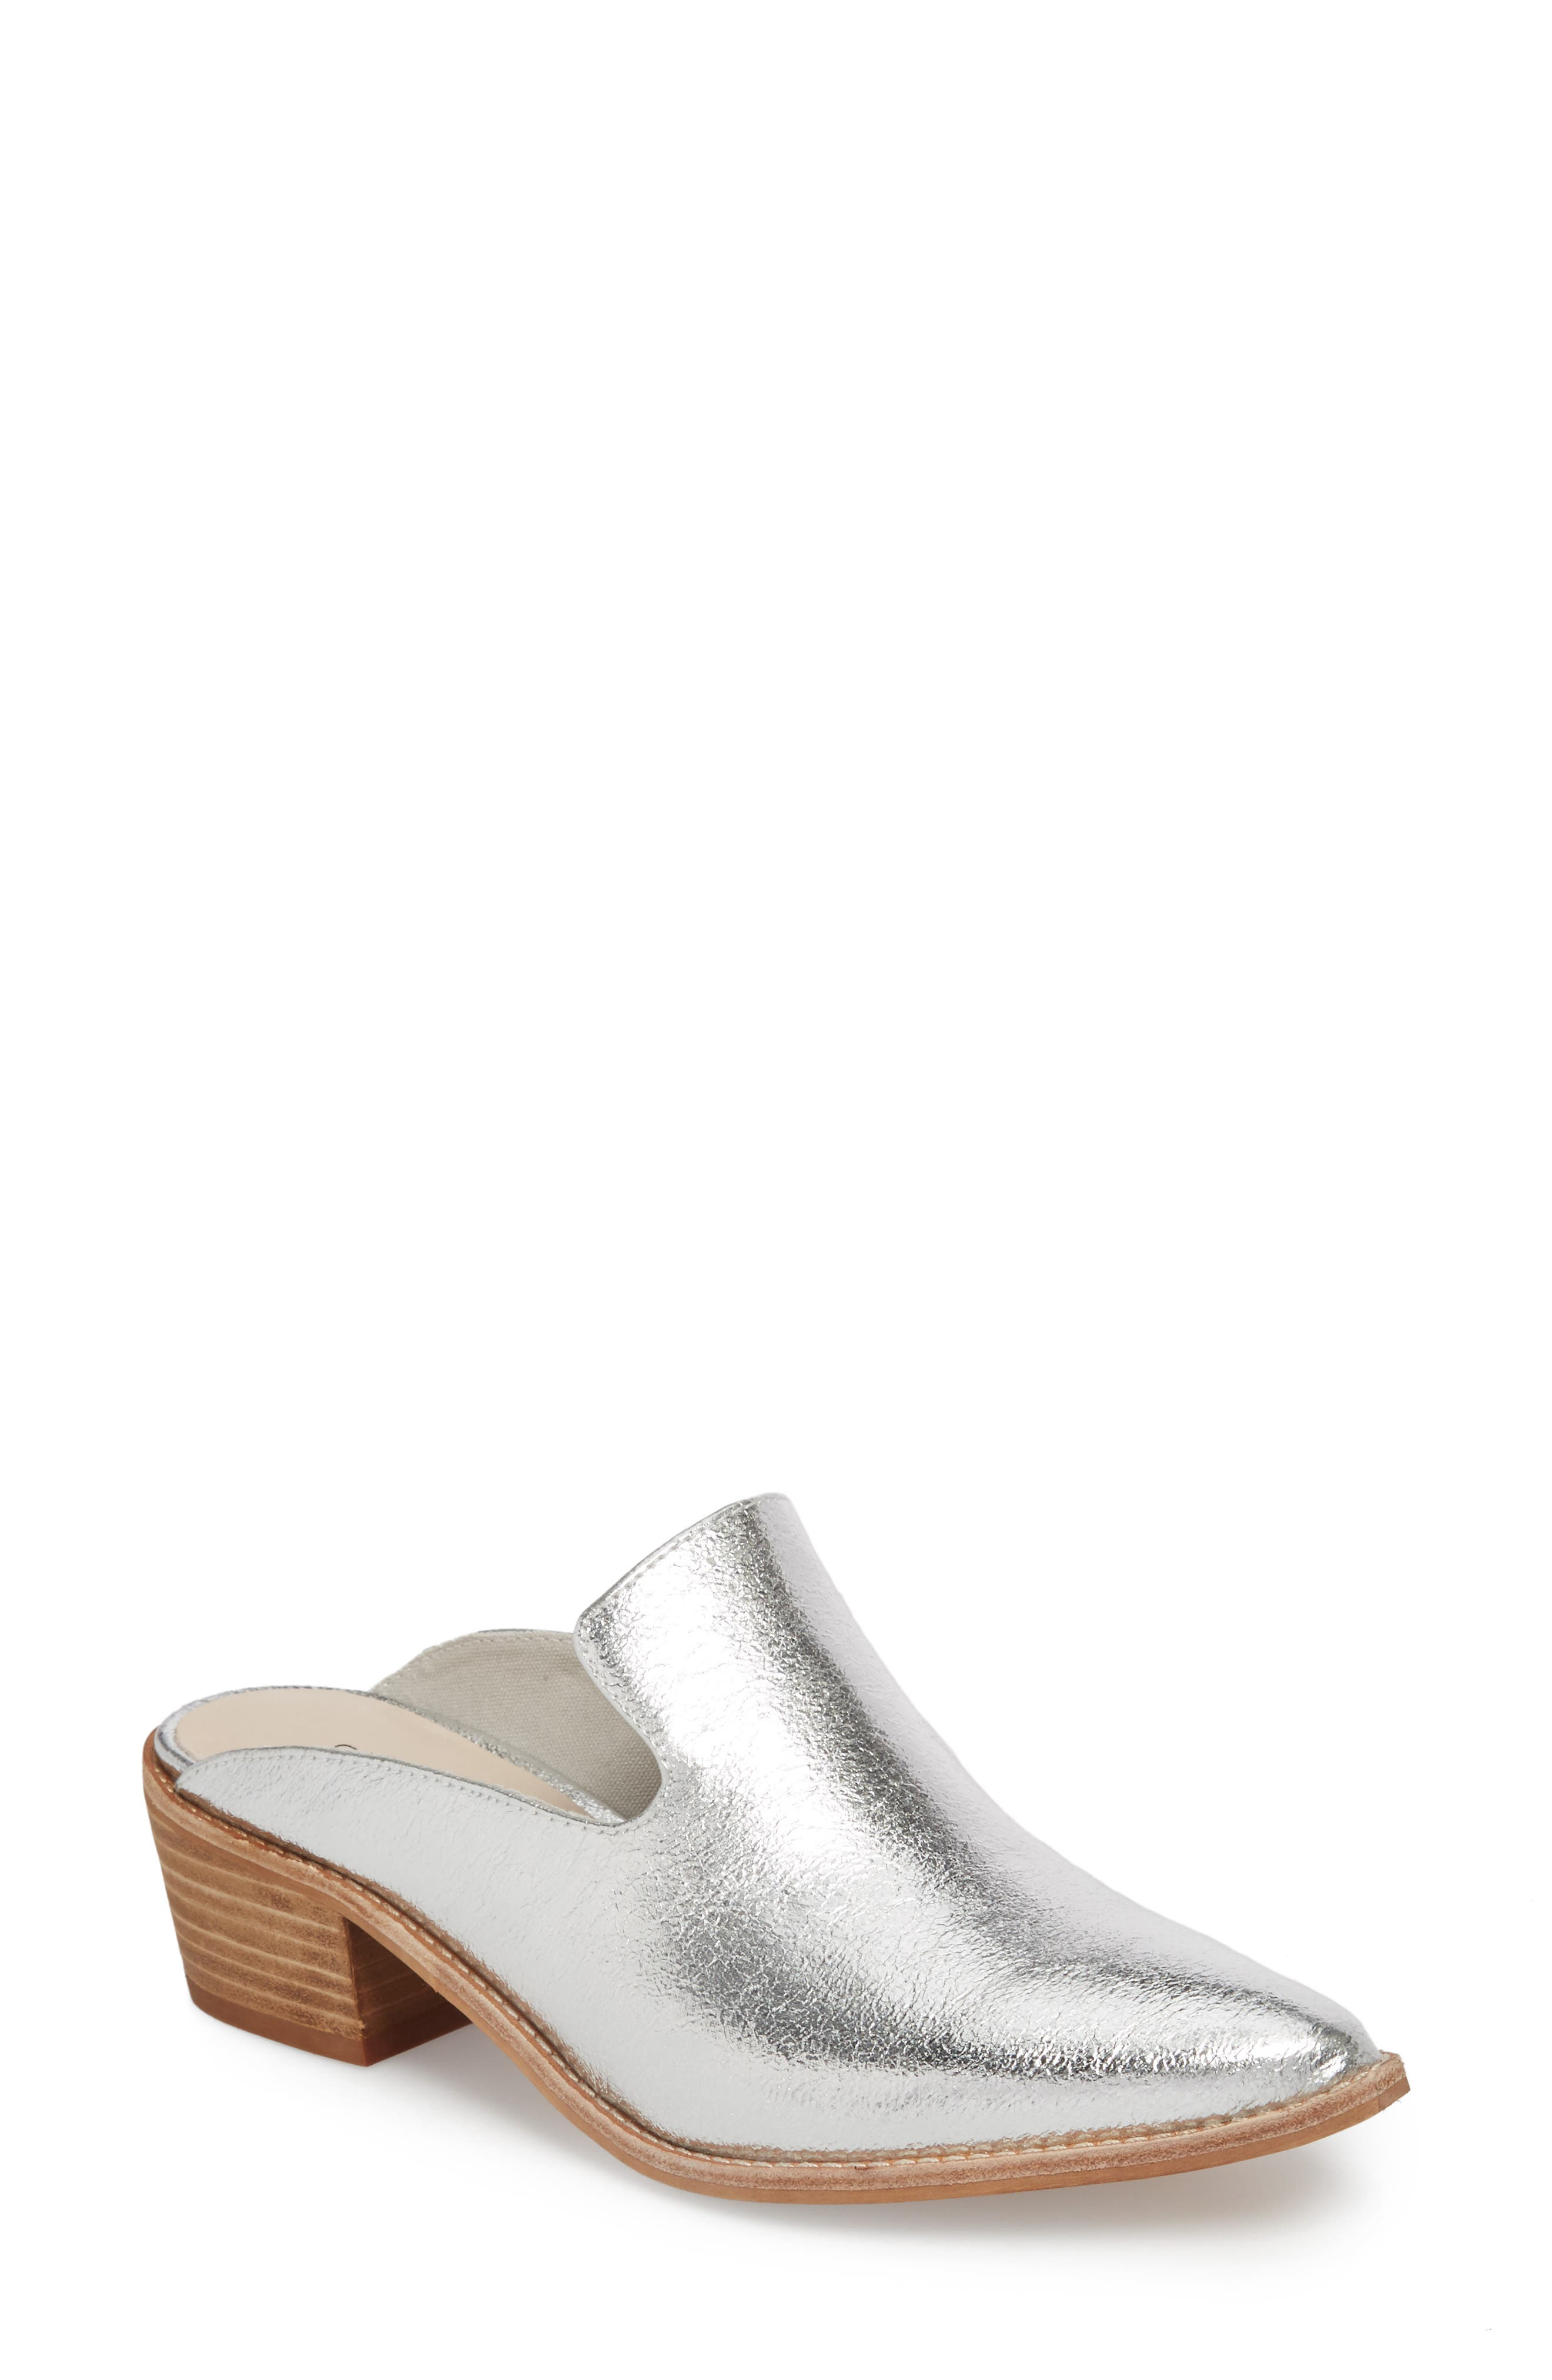 Marnie Loafer Mule,                         Main,                         color, Silver